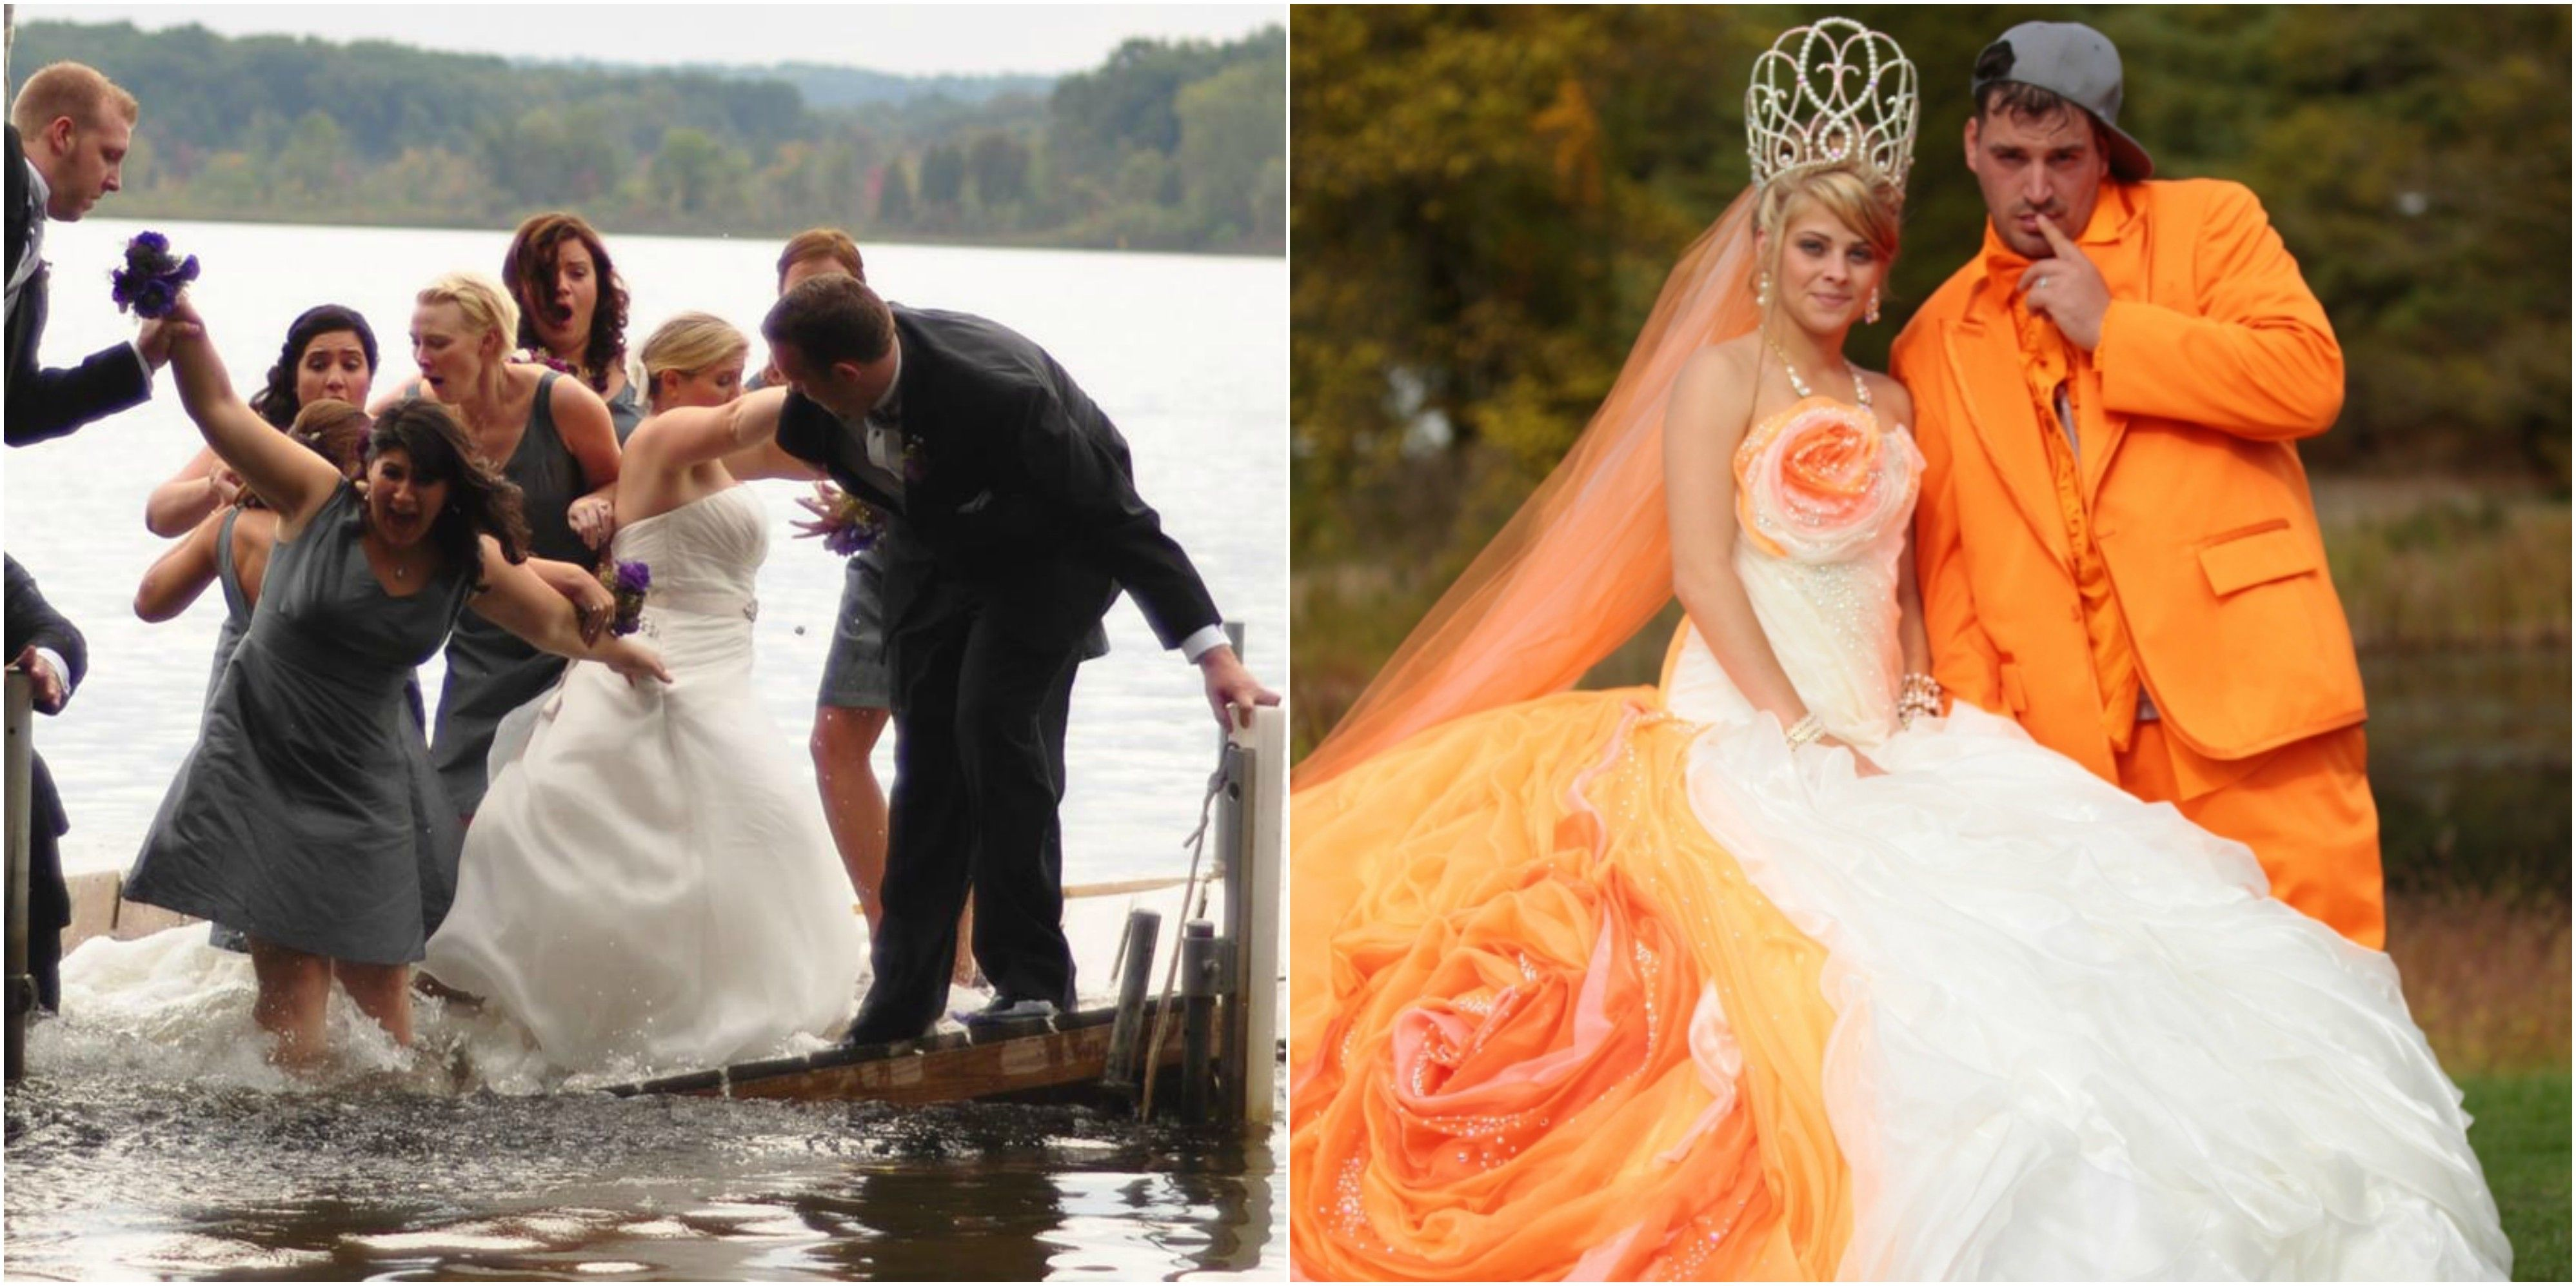 wedding-photography-disasters-photo-retouching-sample